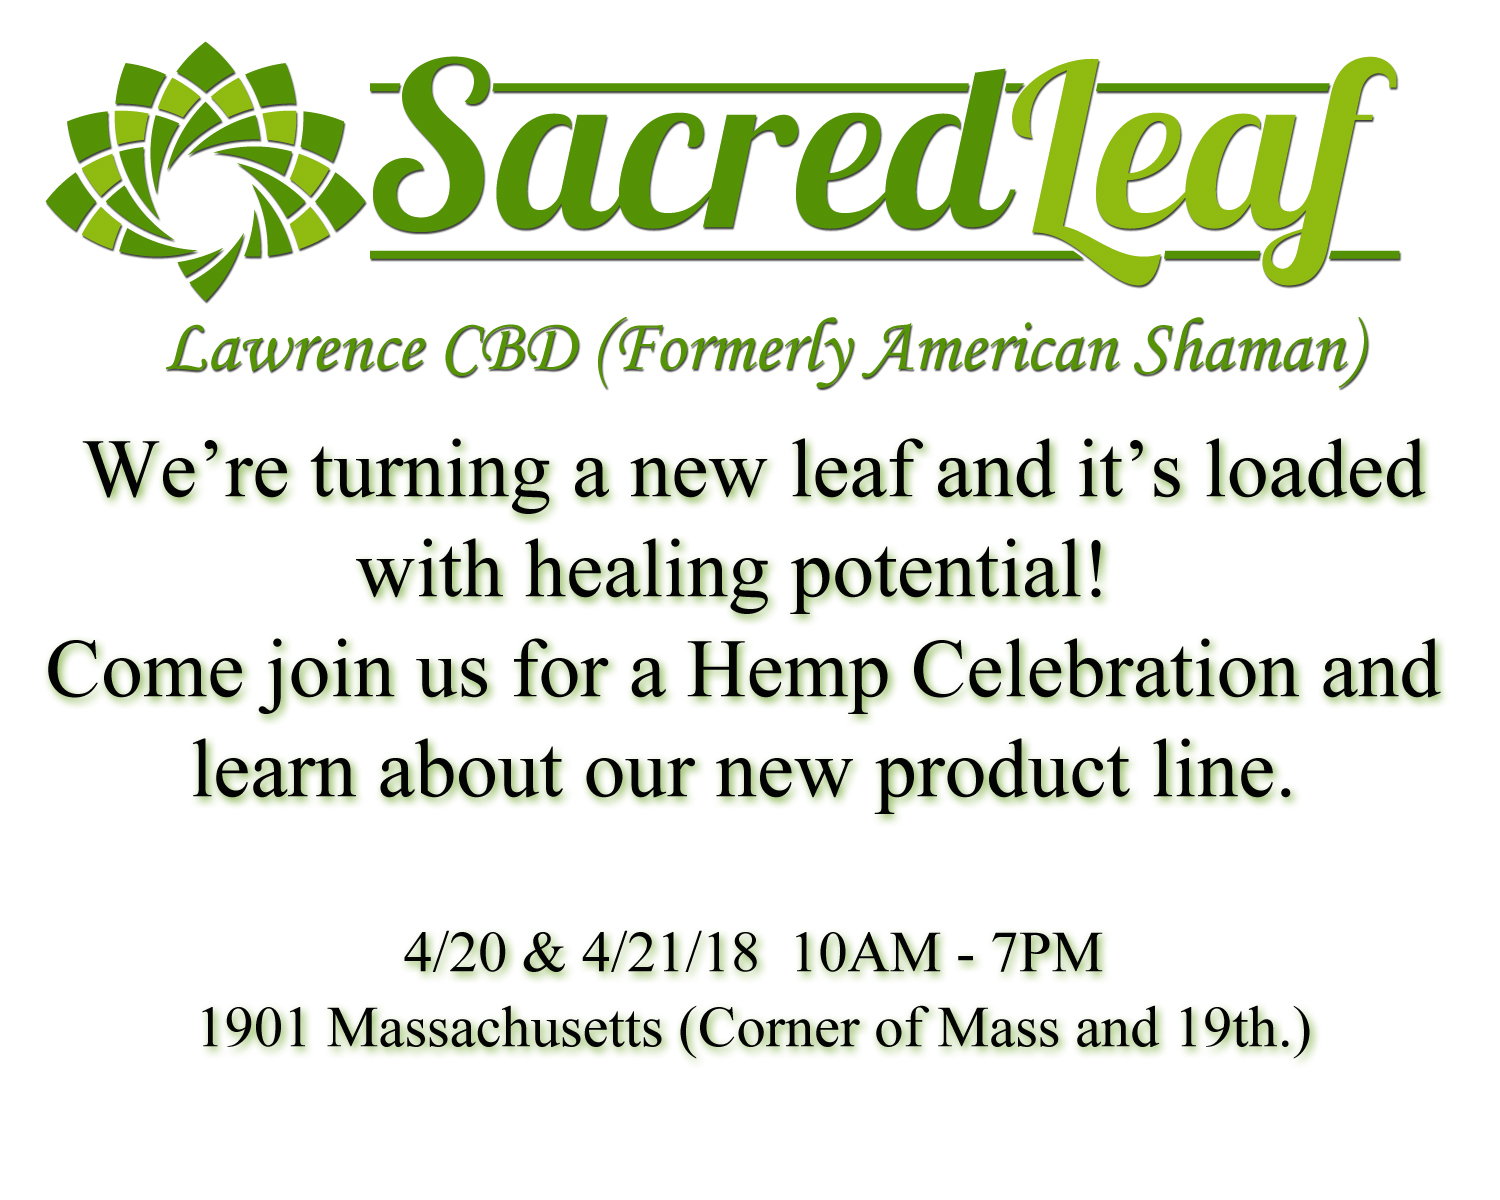 Lawrence CBD is turning a new leaf!  Join us 4/20 & 4/21, 2018.